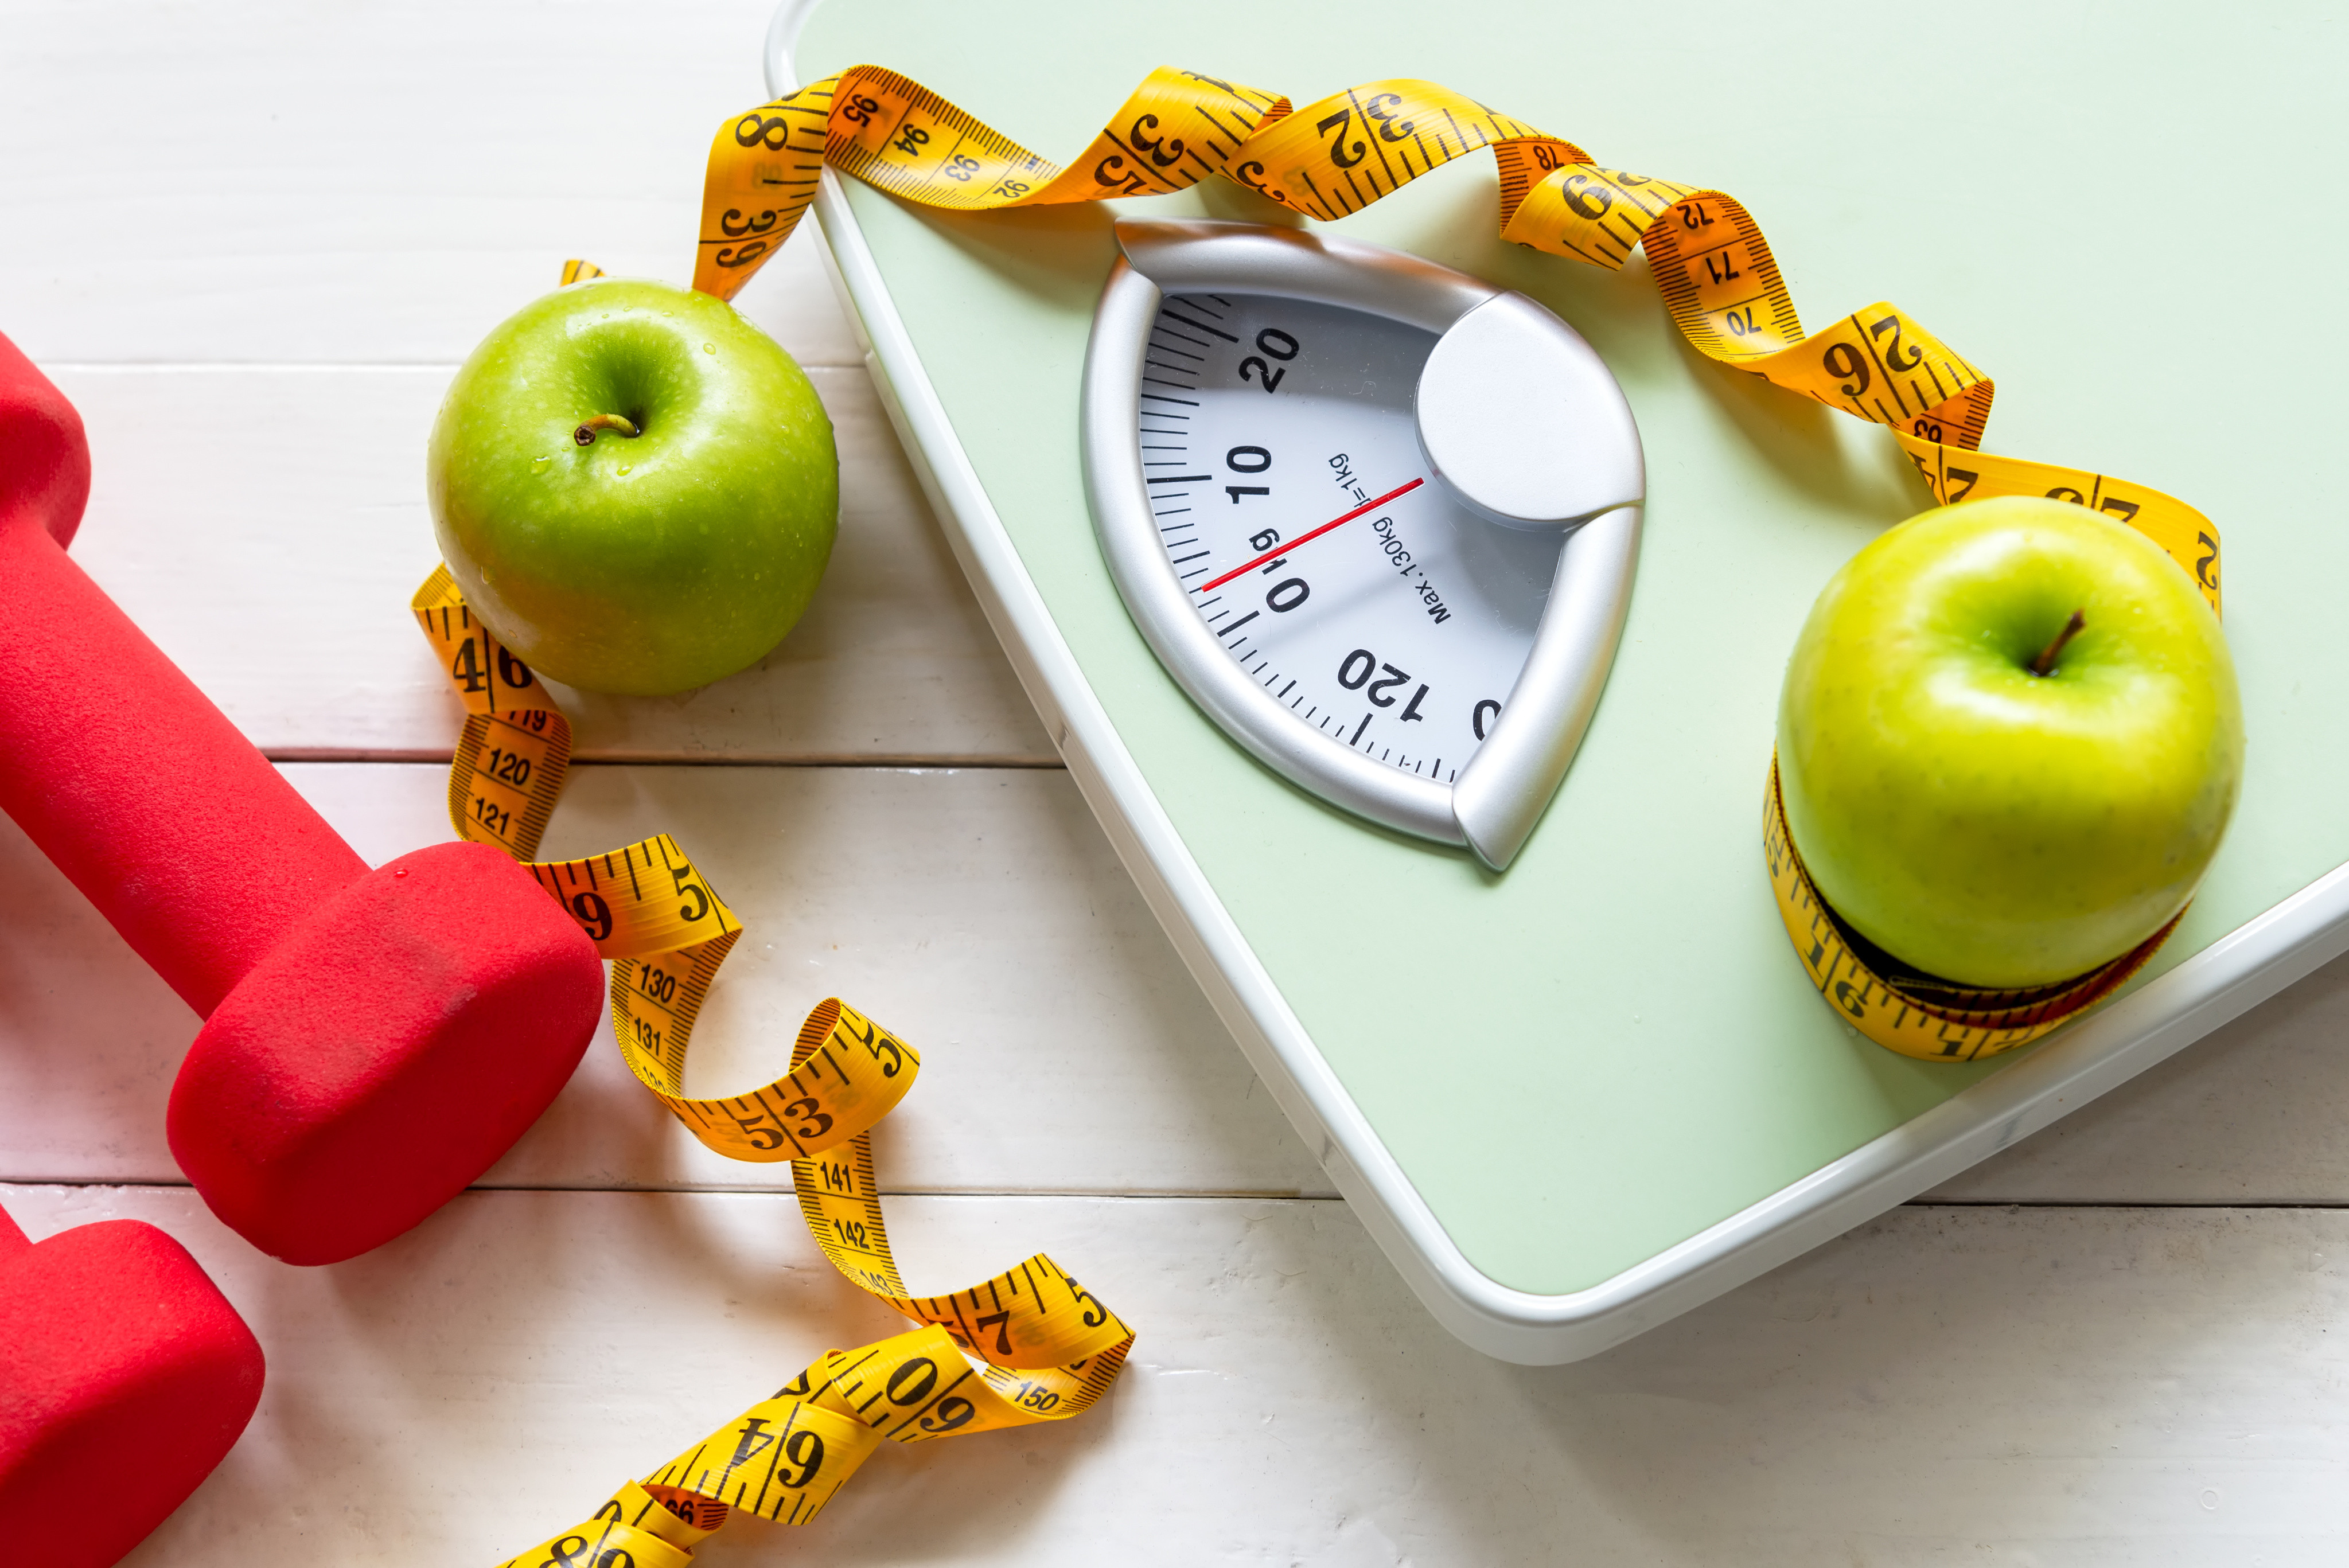 FREE! Win at Weight Loss Info Session